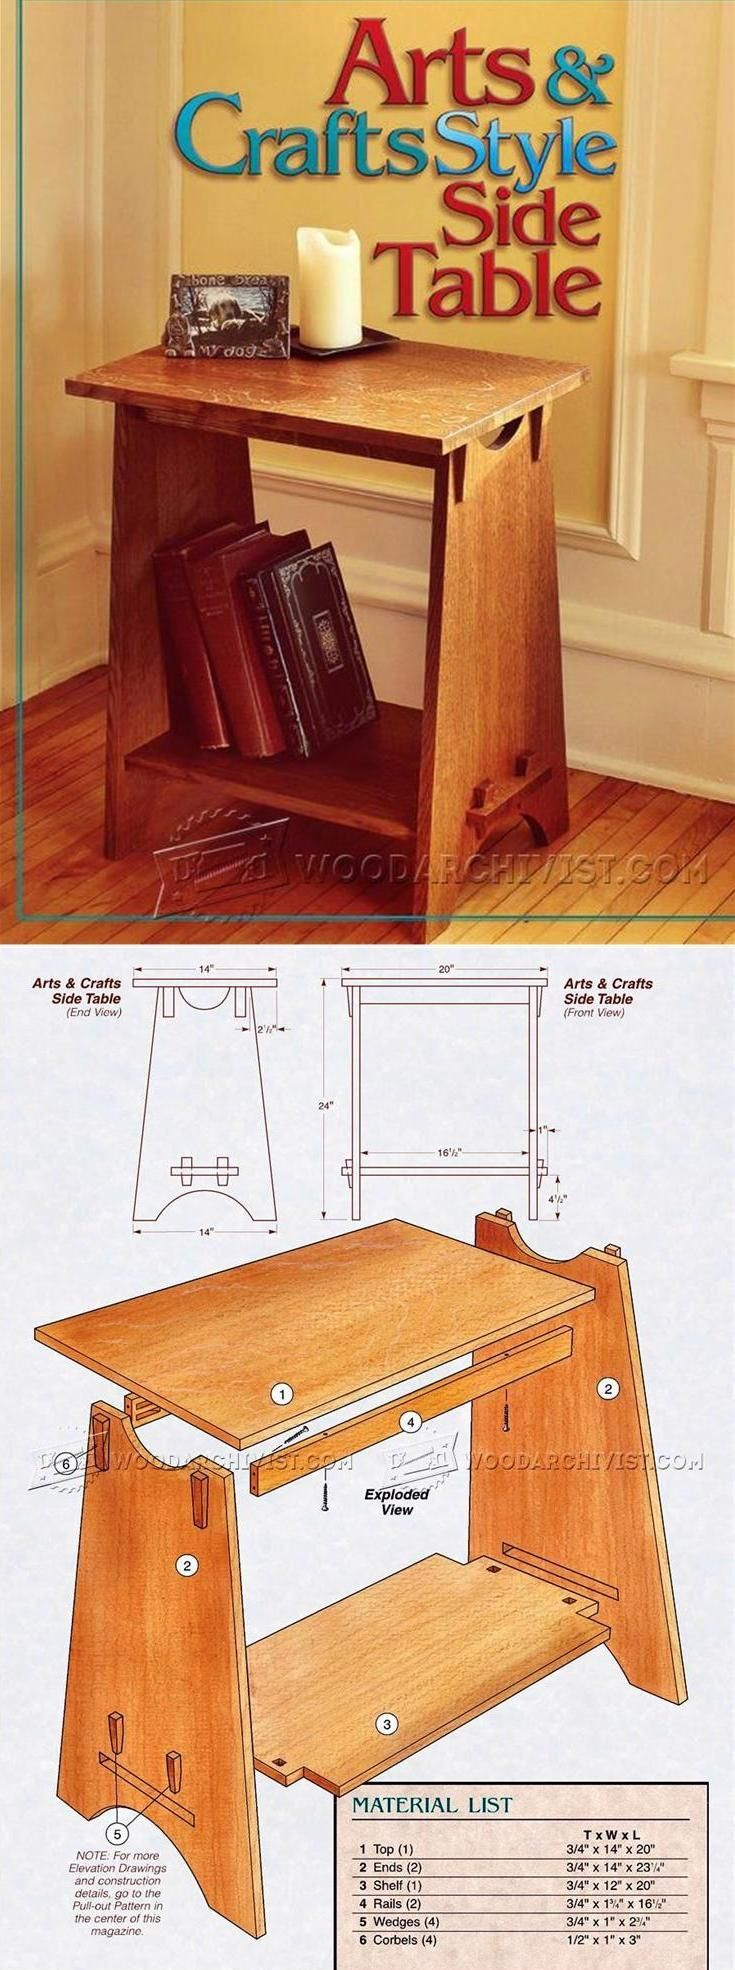 585 best mission craftsman furniture images on pinterest for Craftsman style desk plans